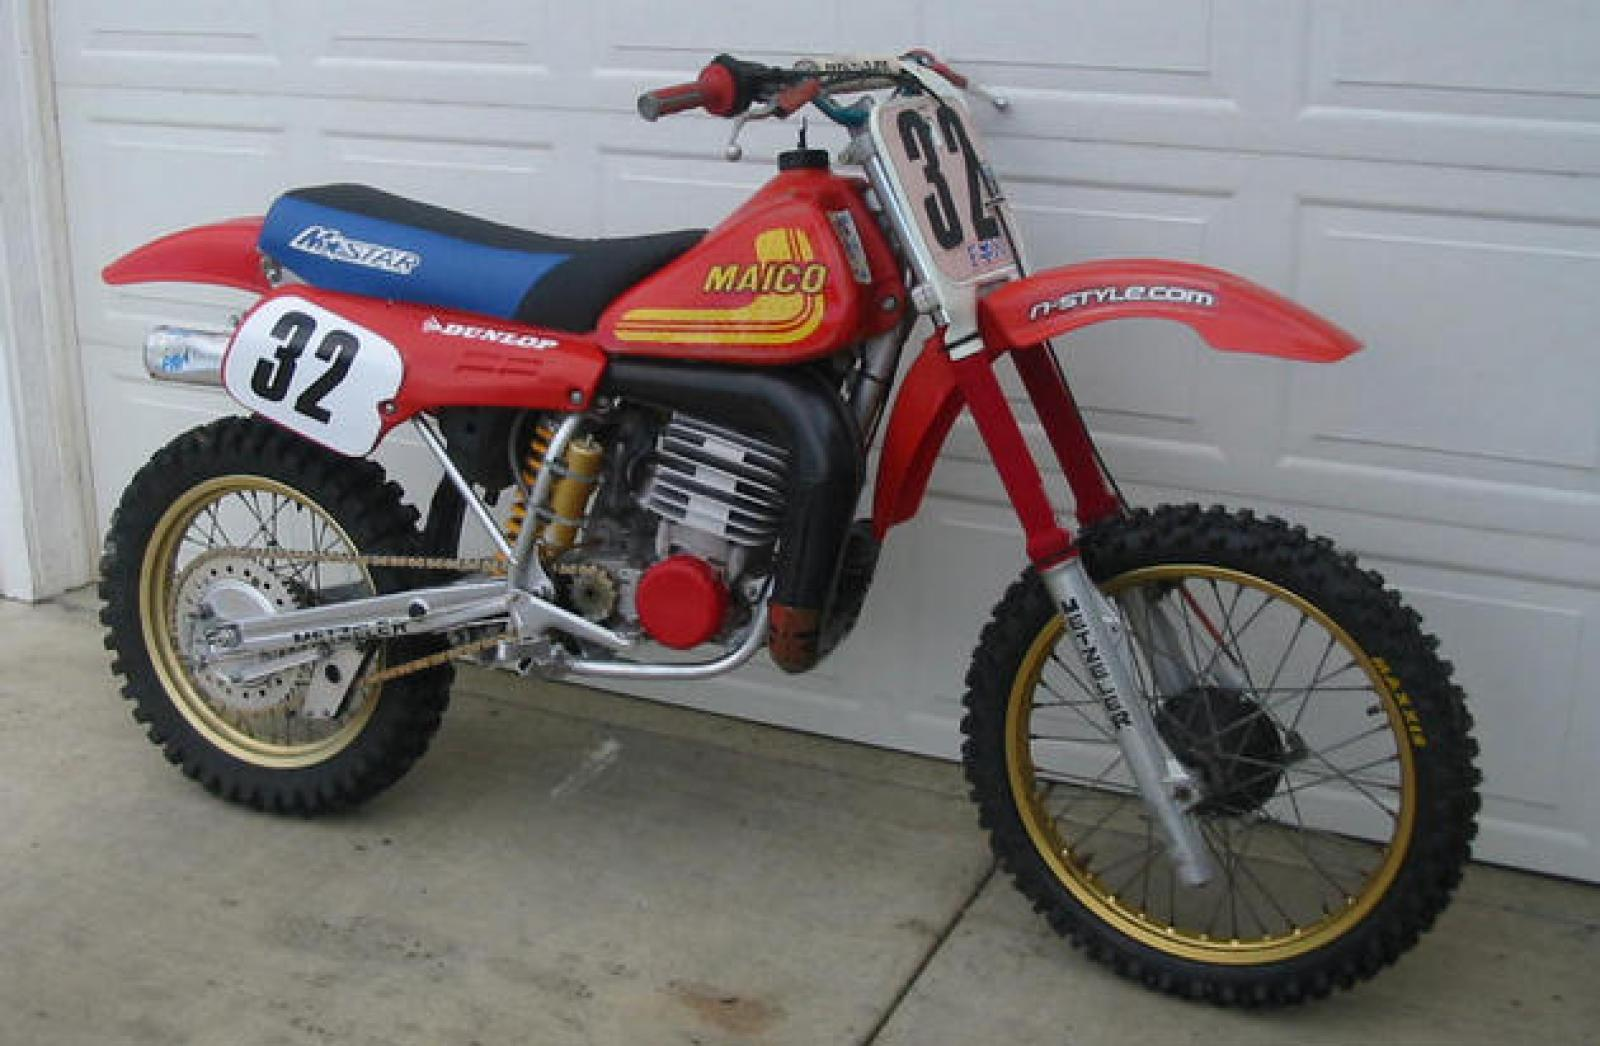 Maico MD 125/6 1975 images #101932